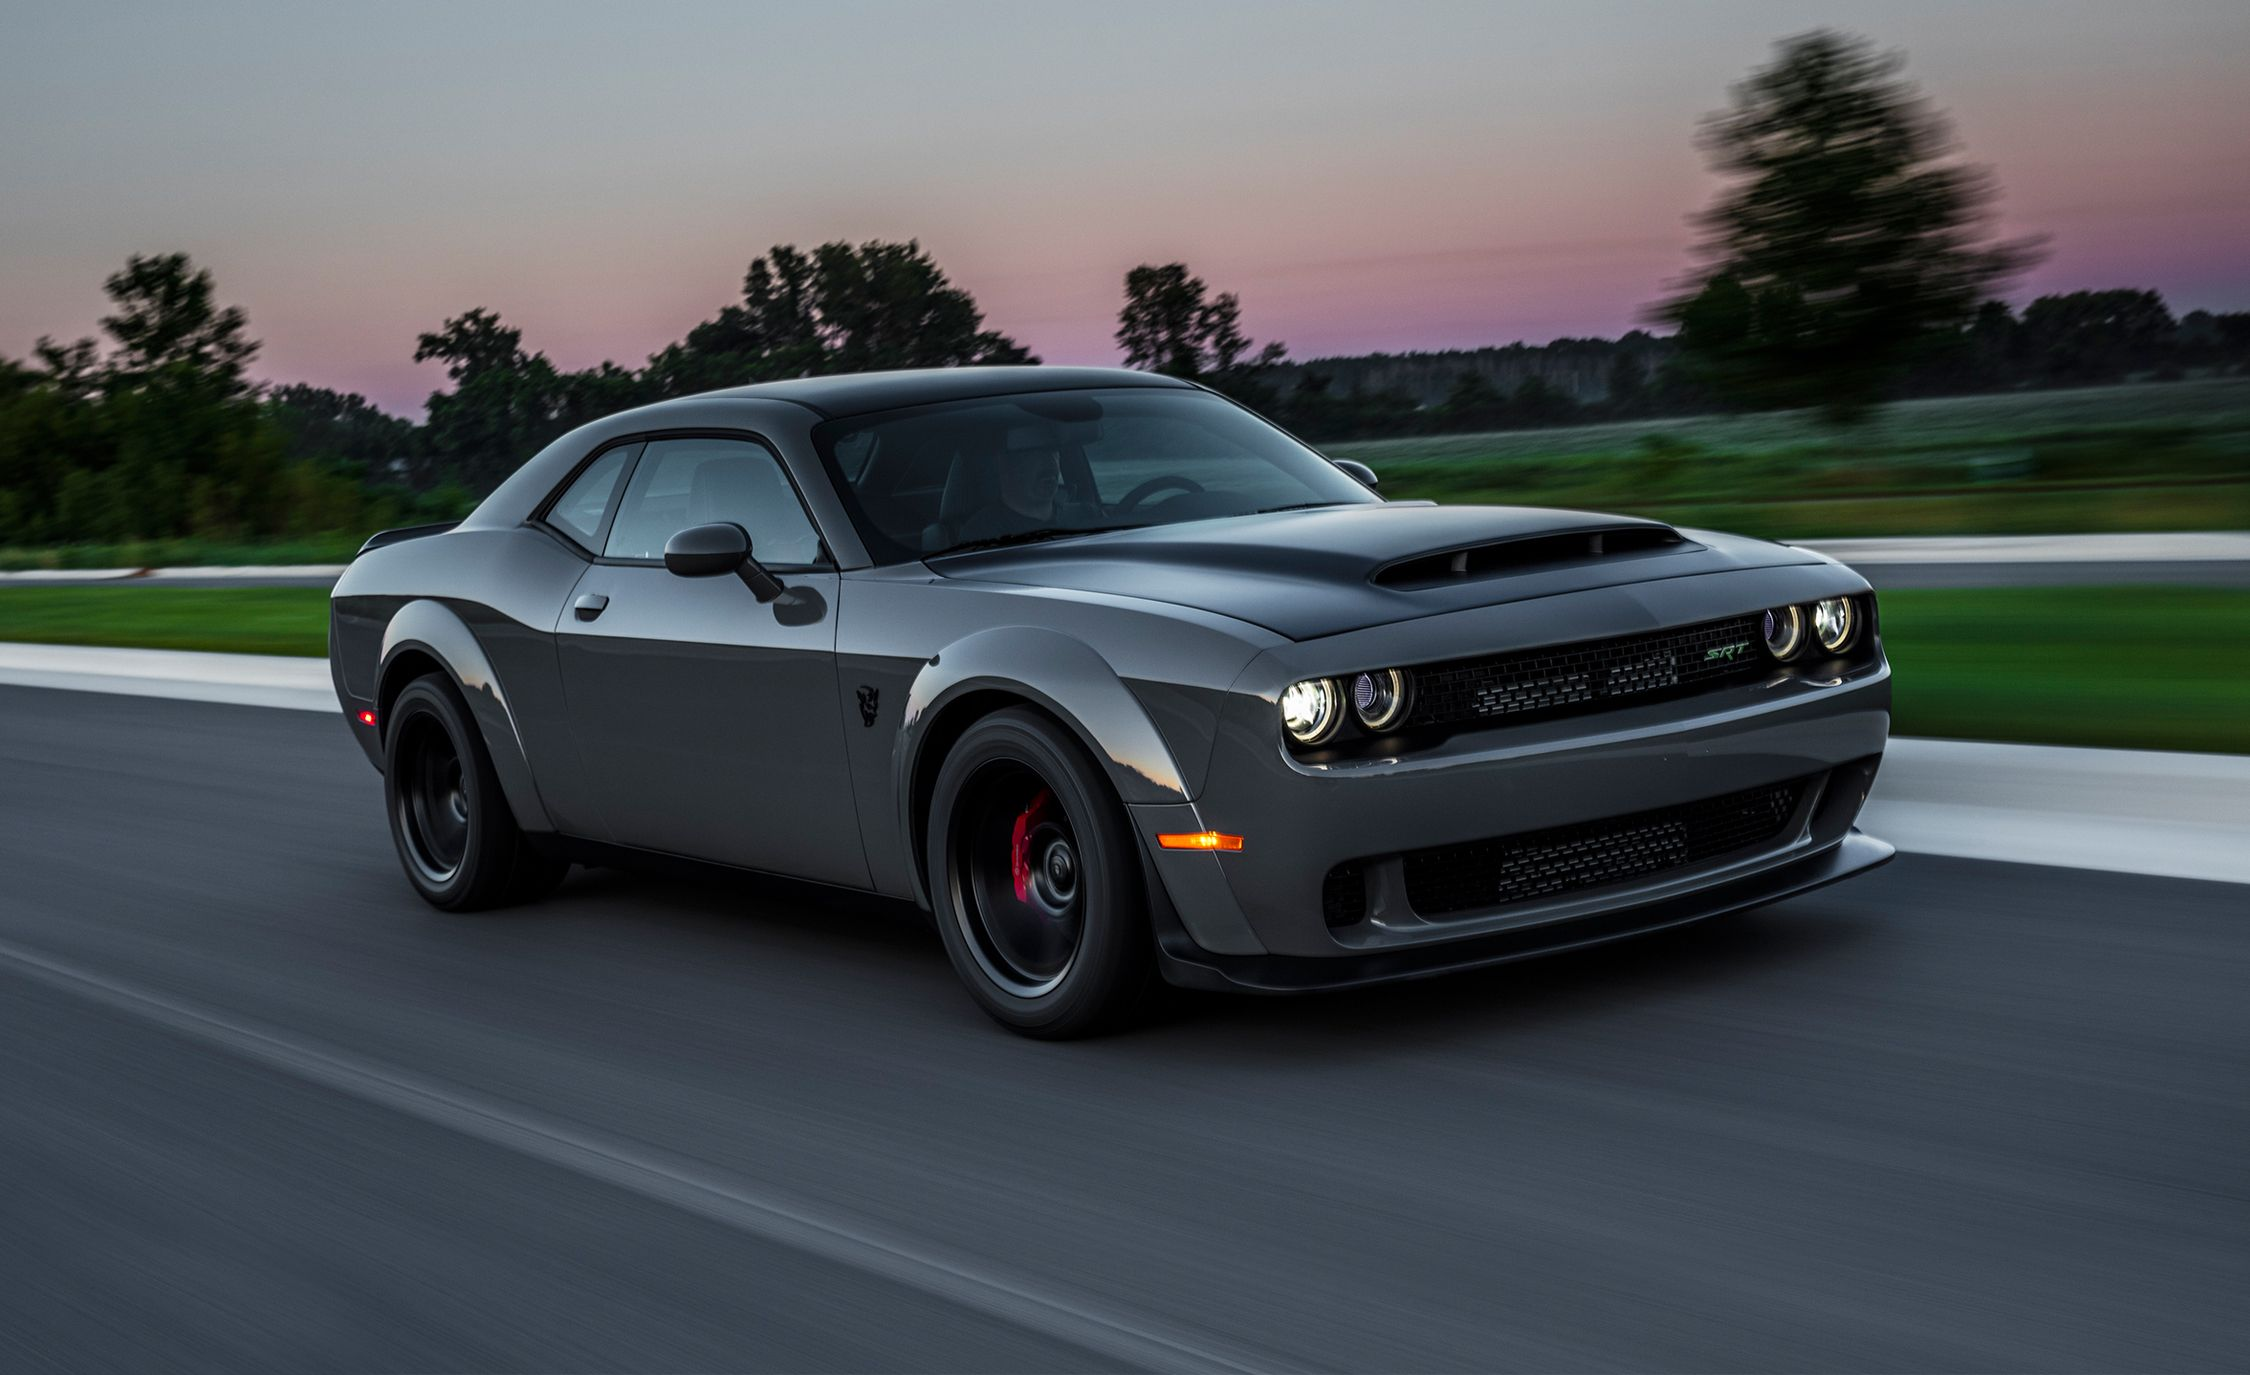 2018 dodge challenger srt demon reviews dodge challenger. Black Bedroom Furniture Sets. Home Design Ideas